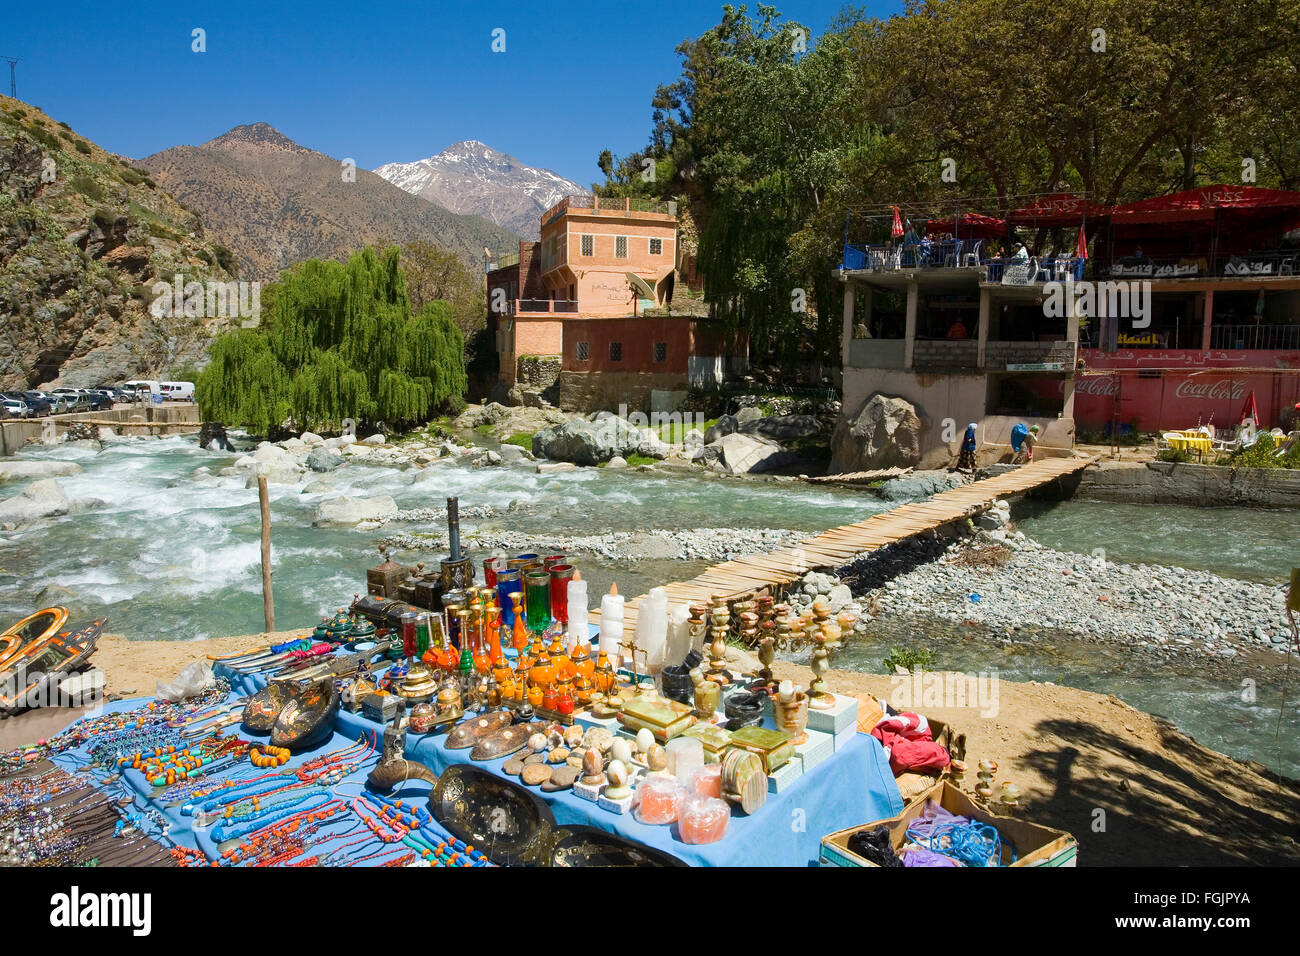 River scene at the village of Setti Fatma in the Ourika Valley - Stock Image